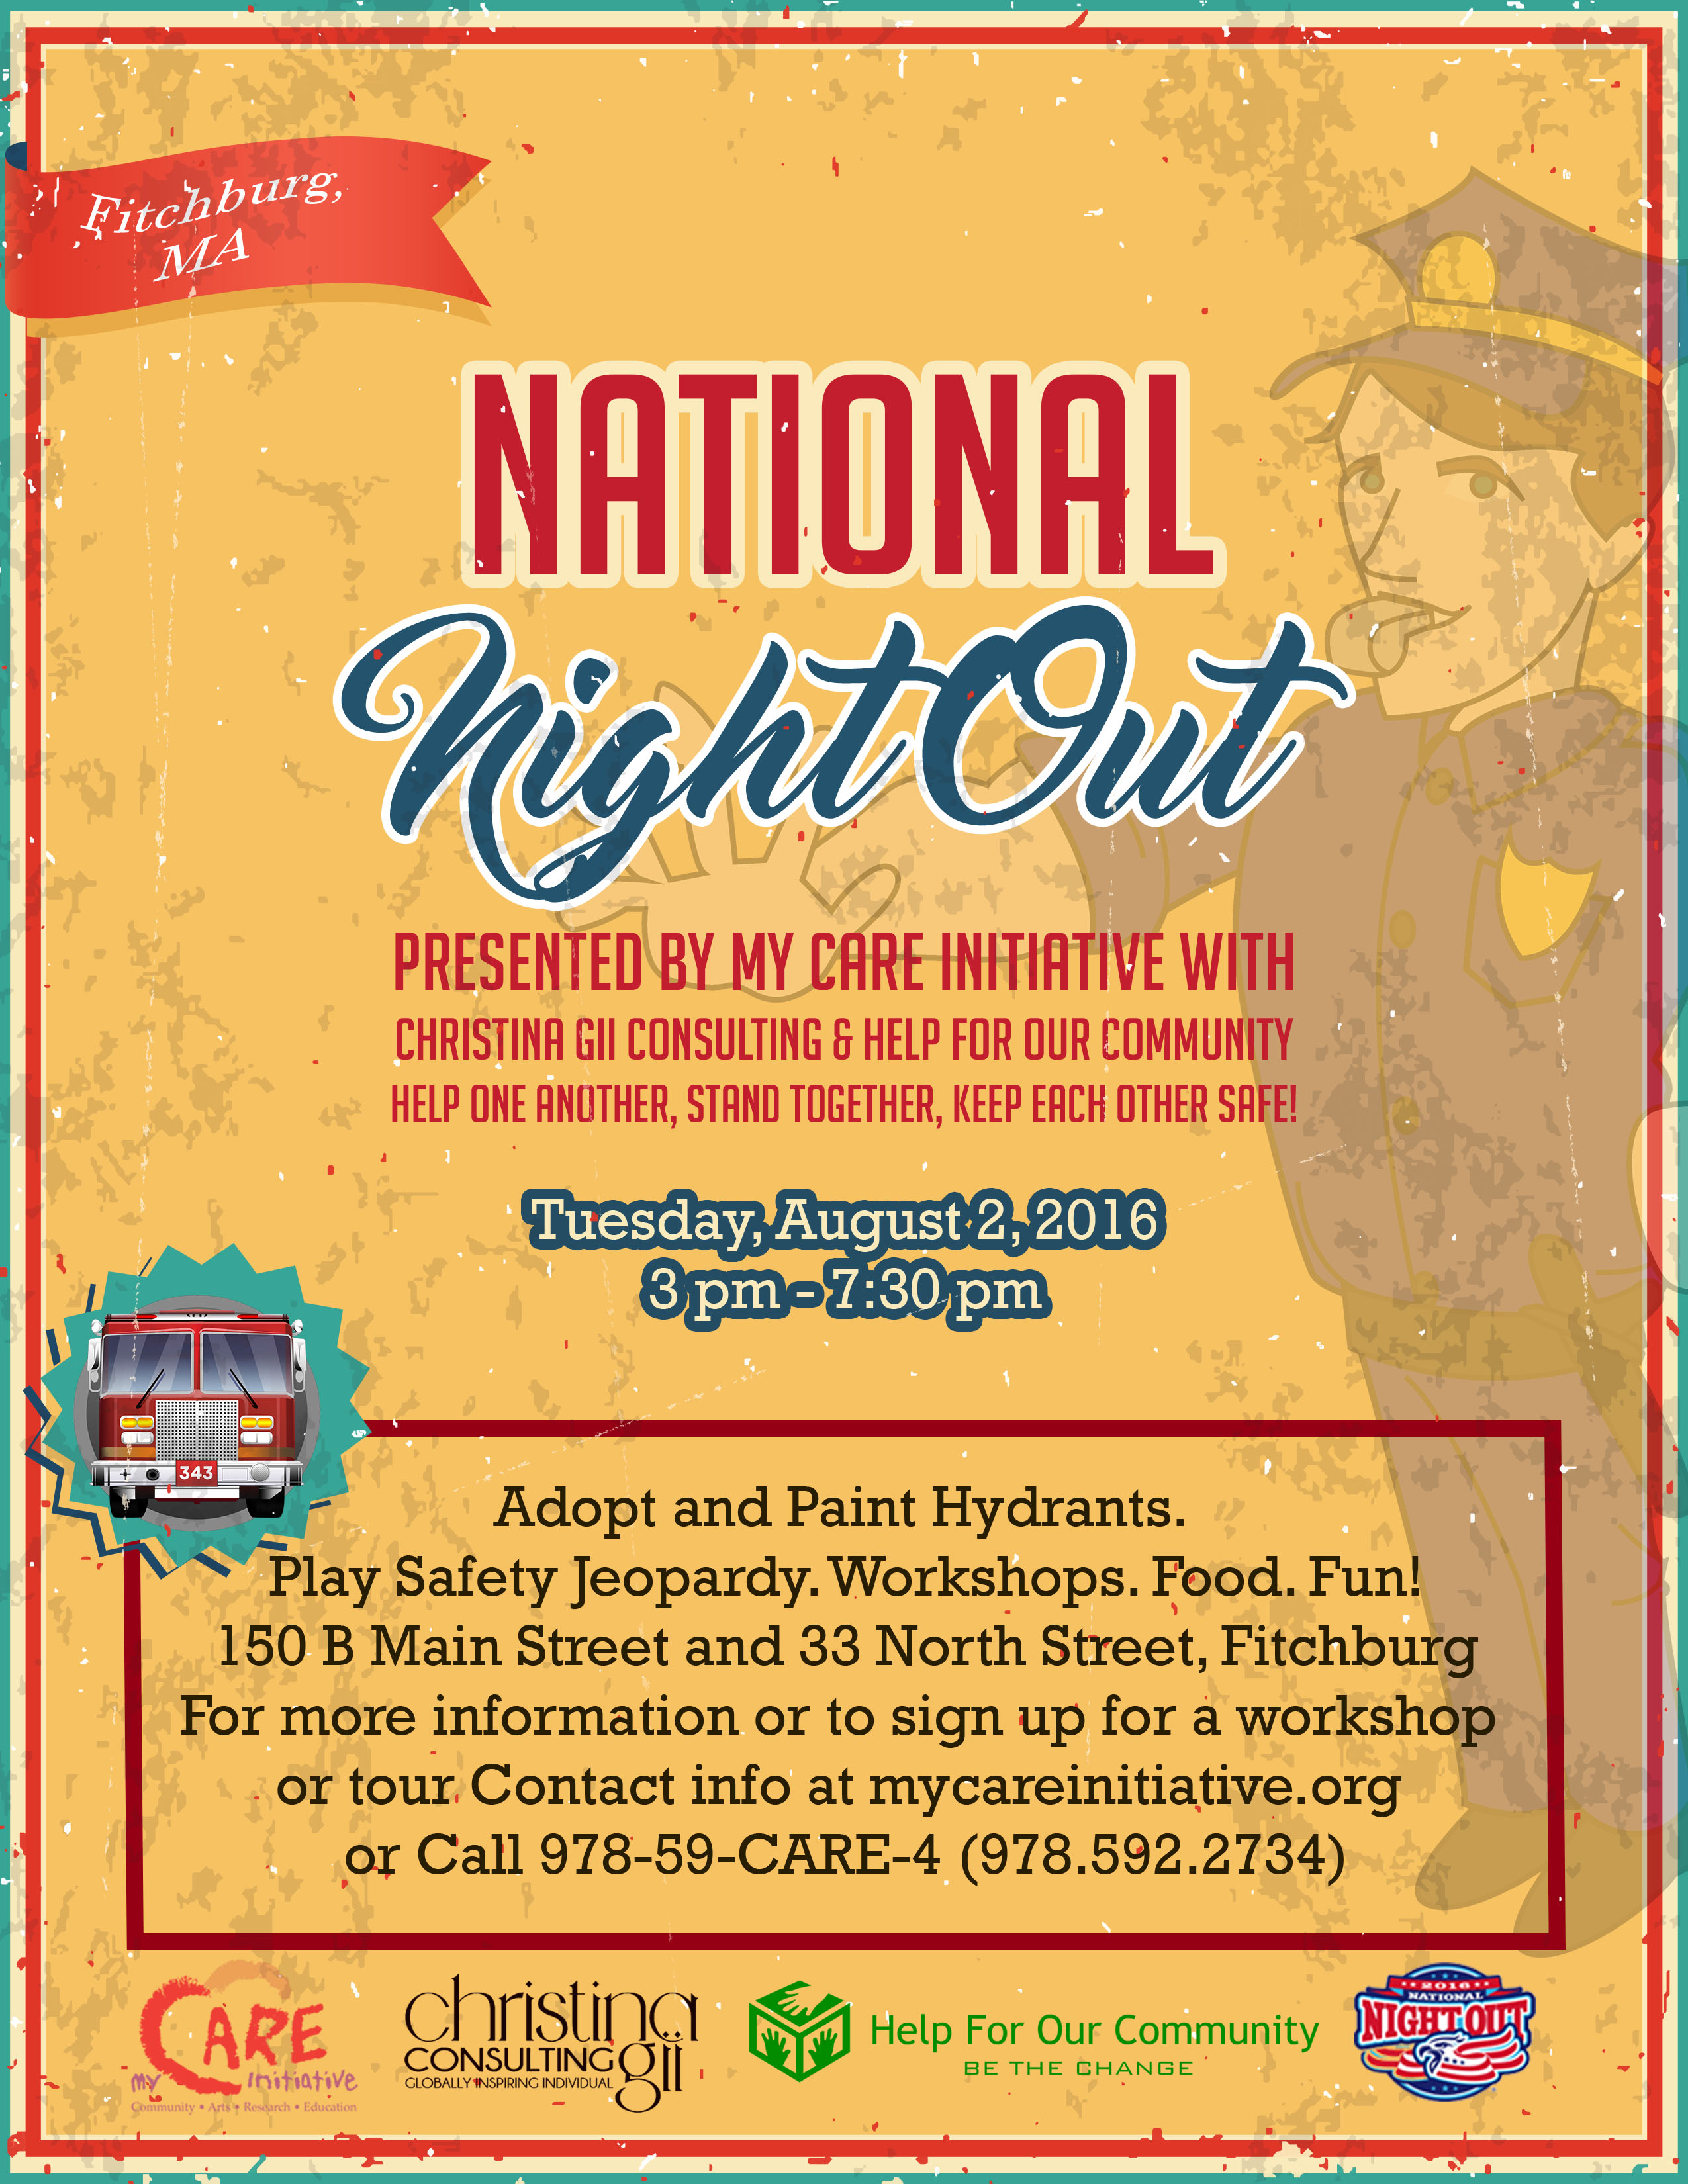 National Night Out 2016 Fun Flyer